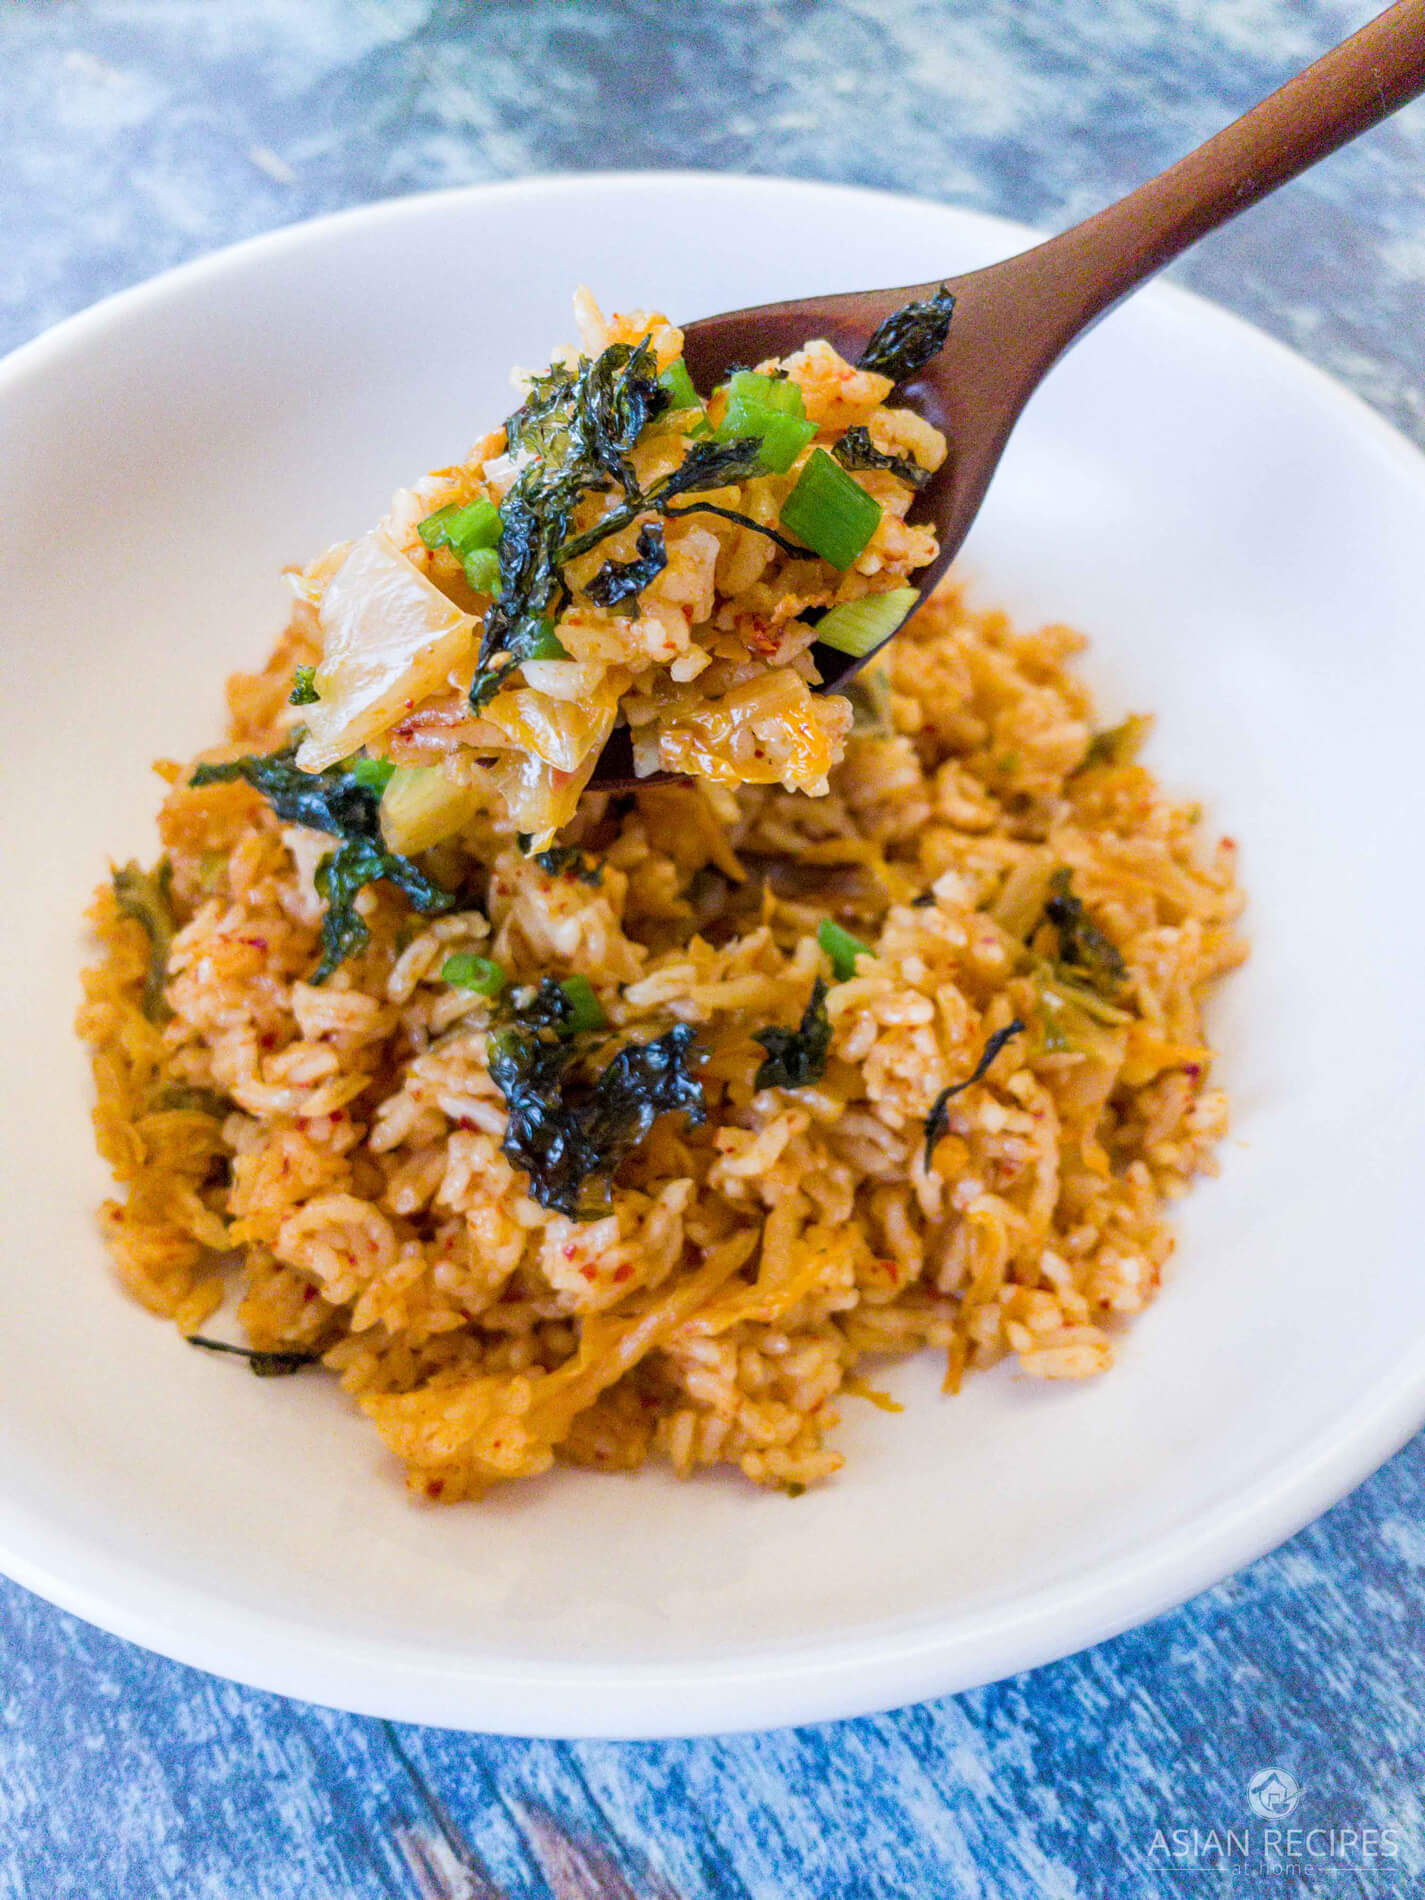 Spoonful of kimchi fried rice.